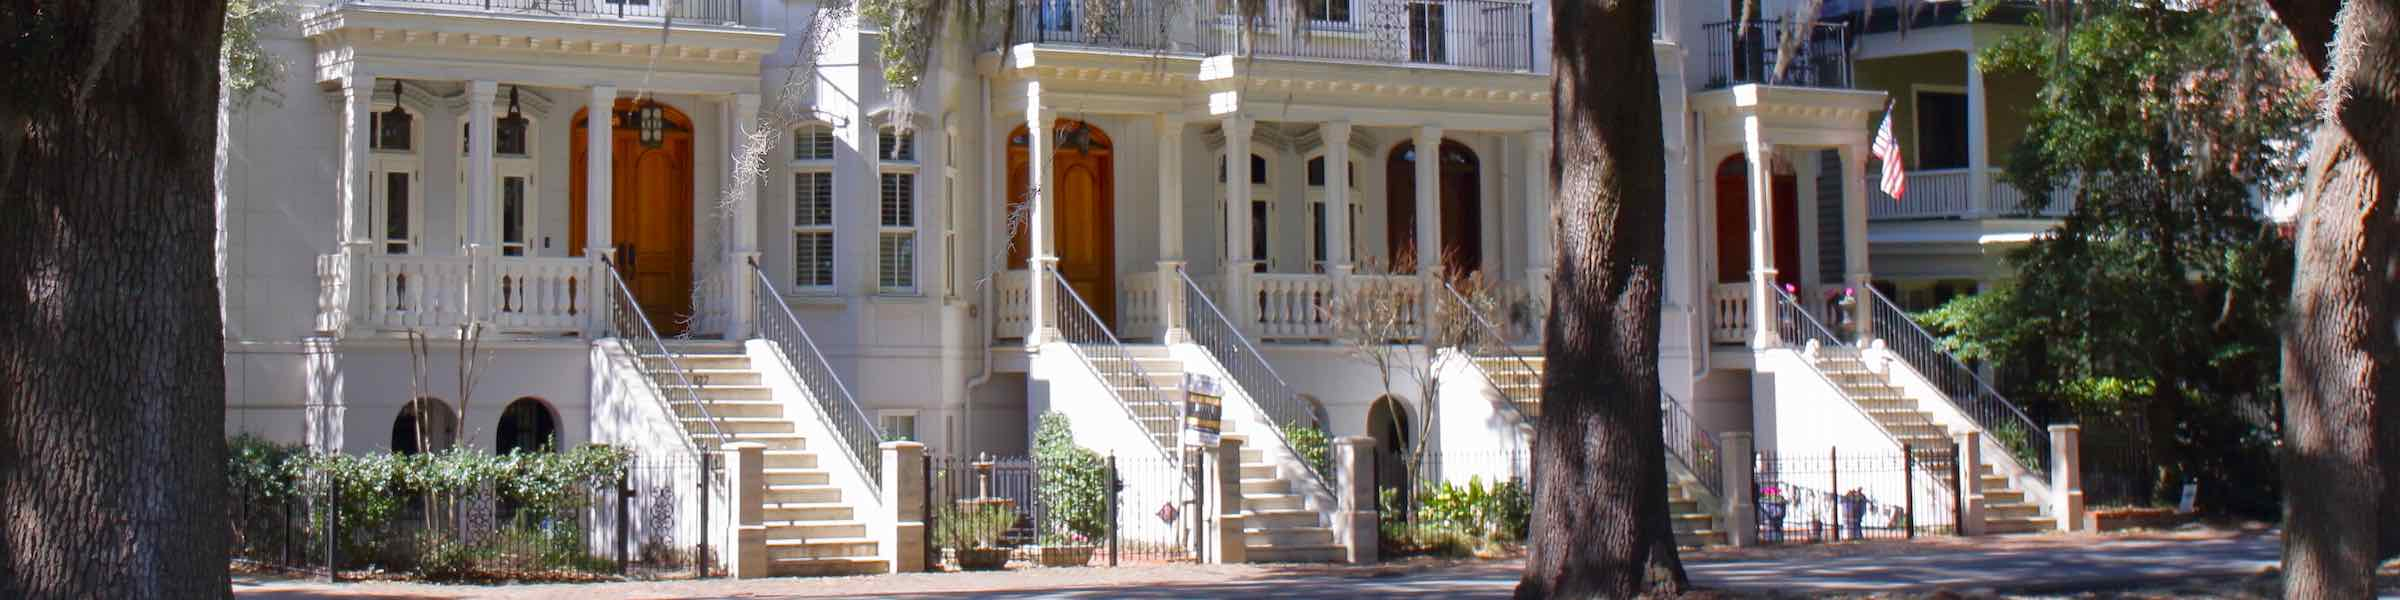 19th century architecture along Whitaker Street in the north of Savannah, GA's Victorian District.